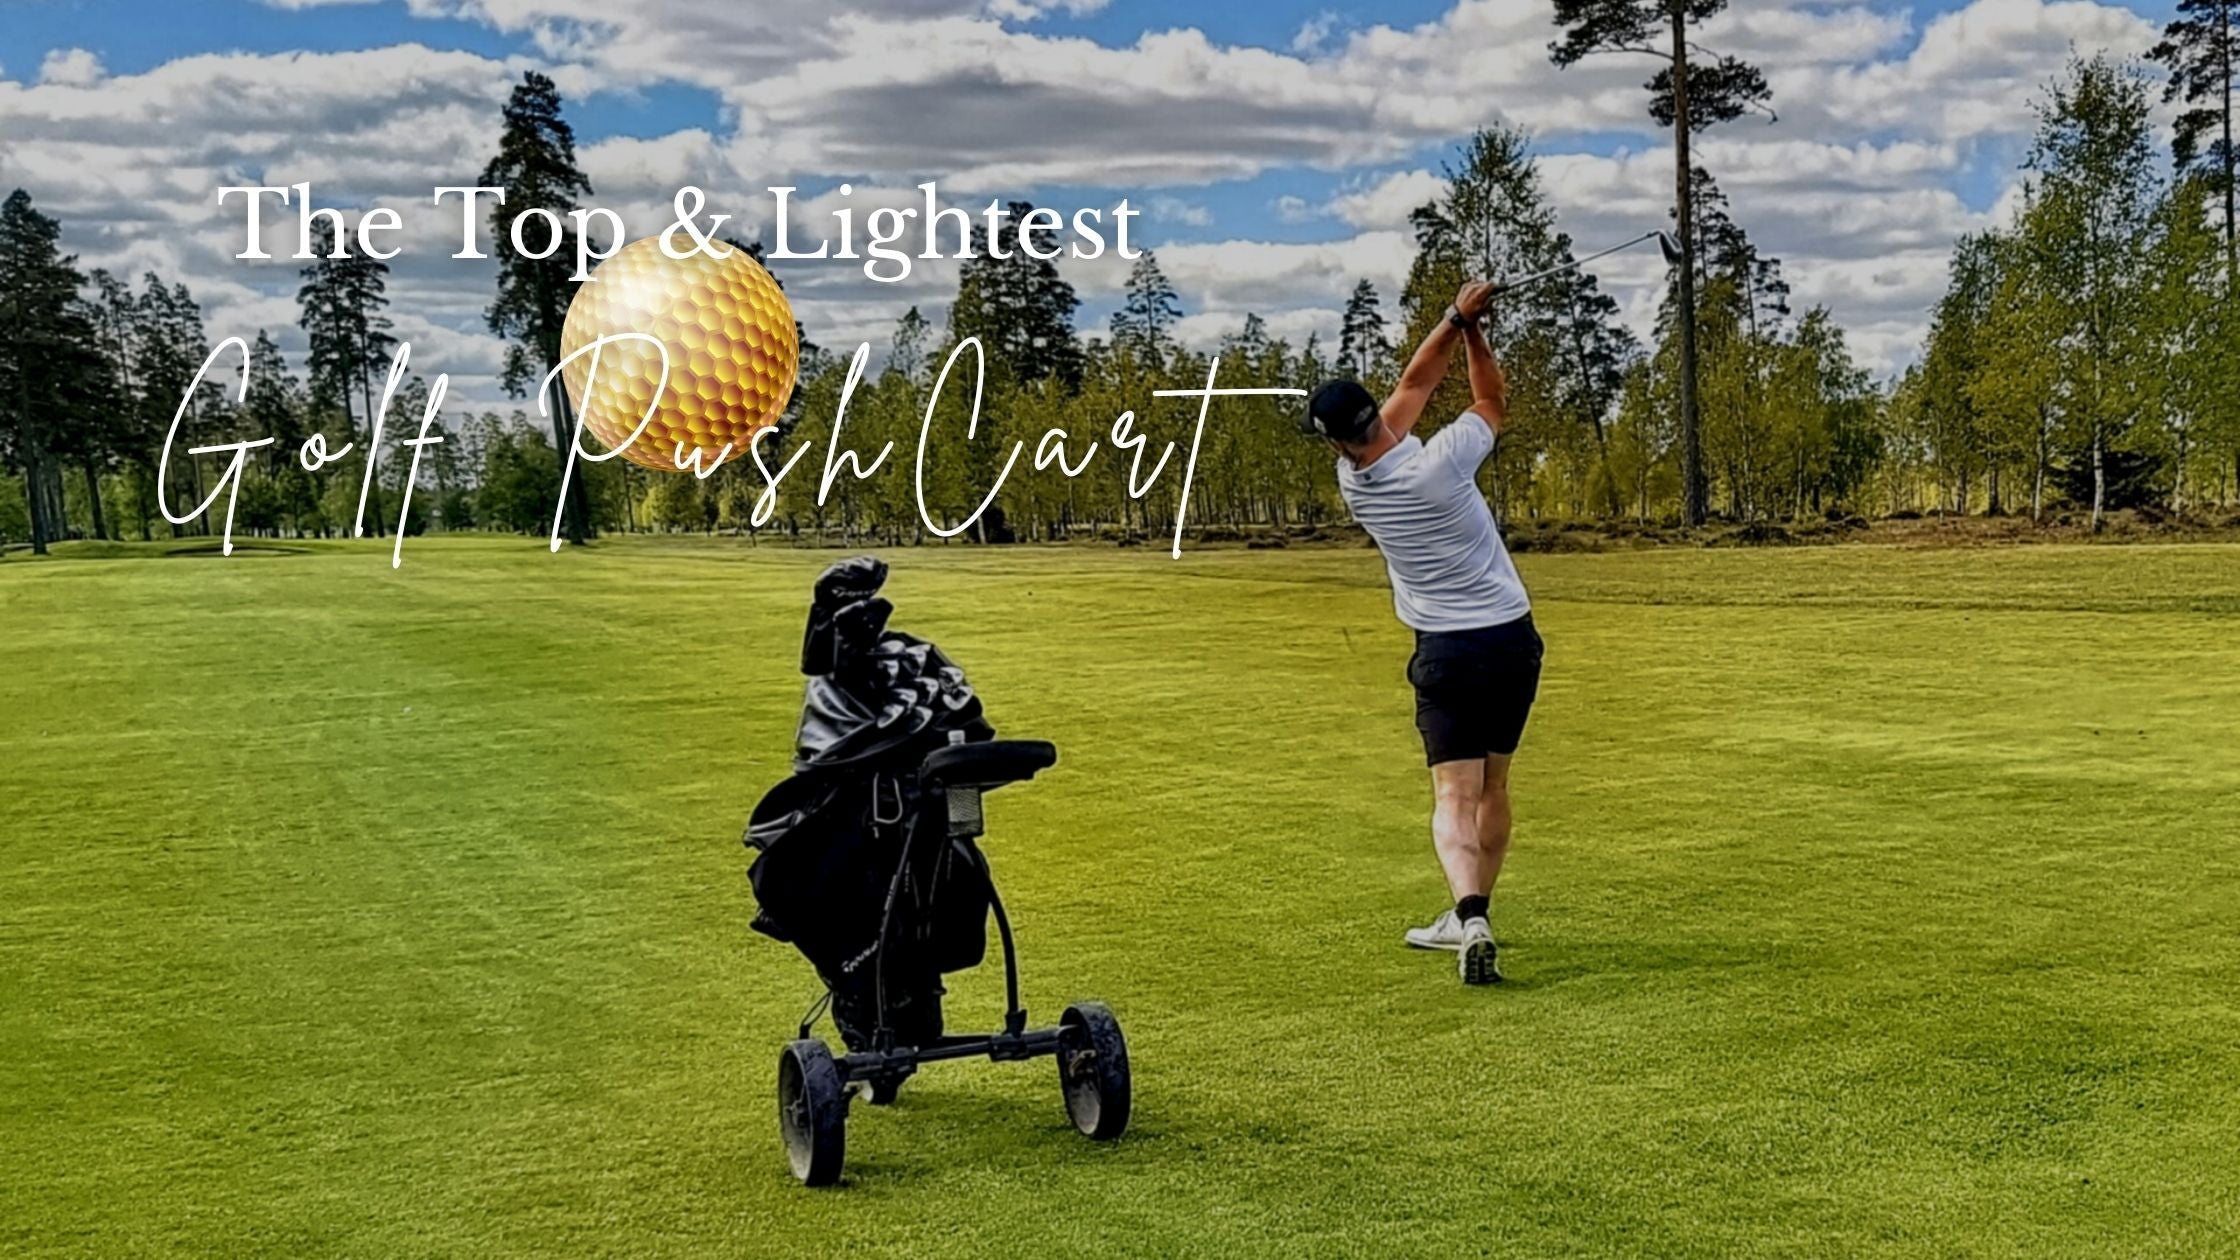 golfer push golf cart in golf course | Best Gift for Golfers